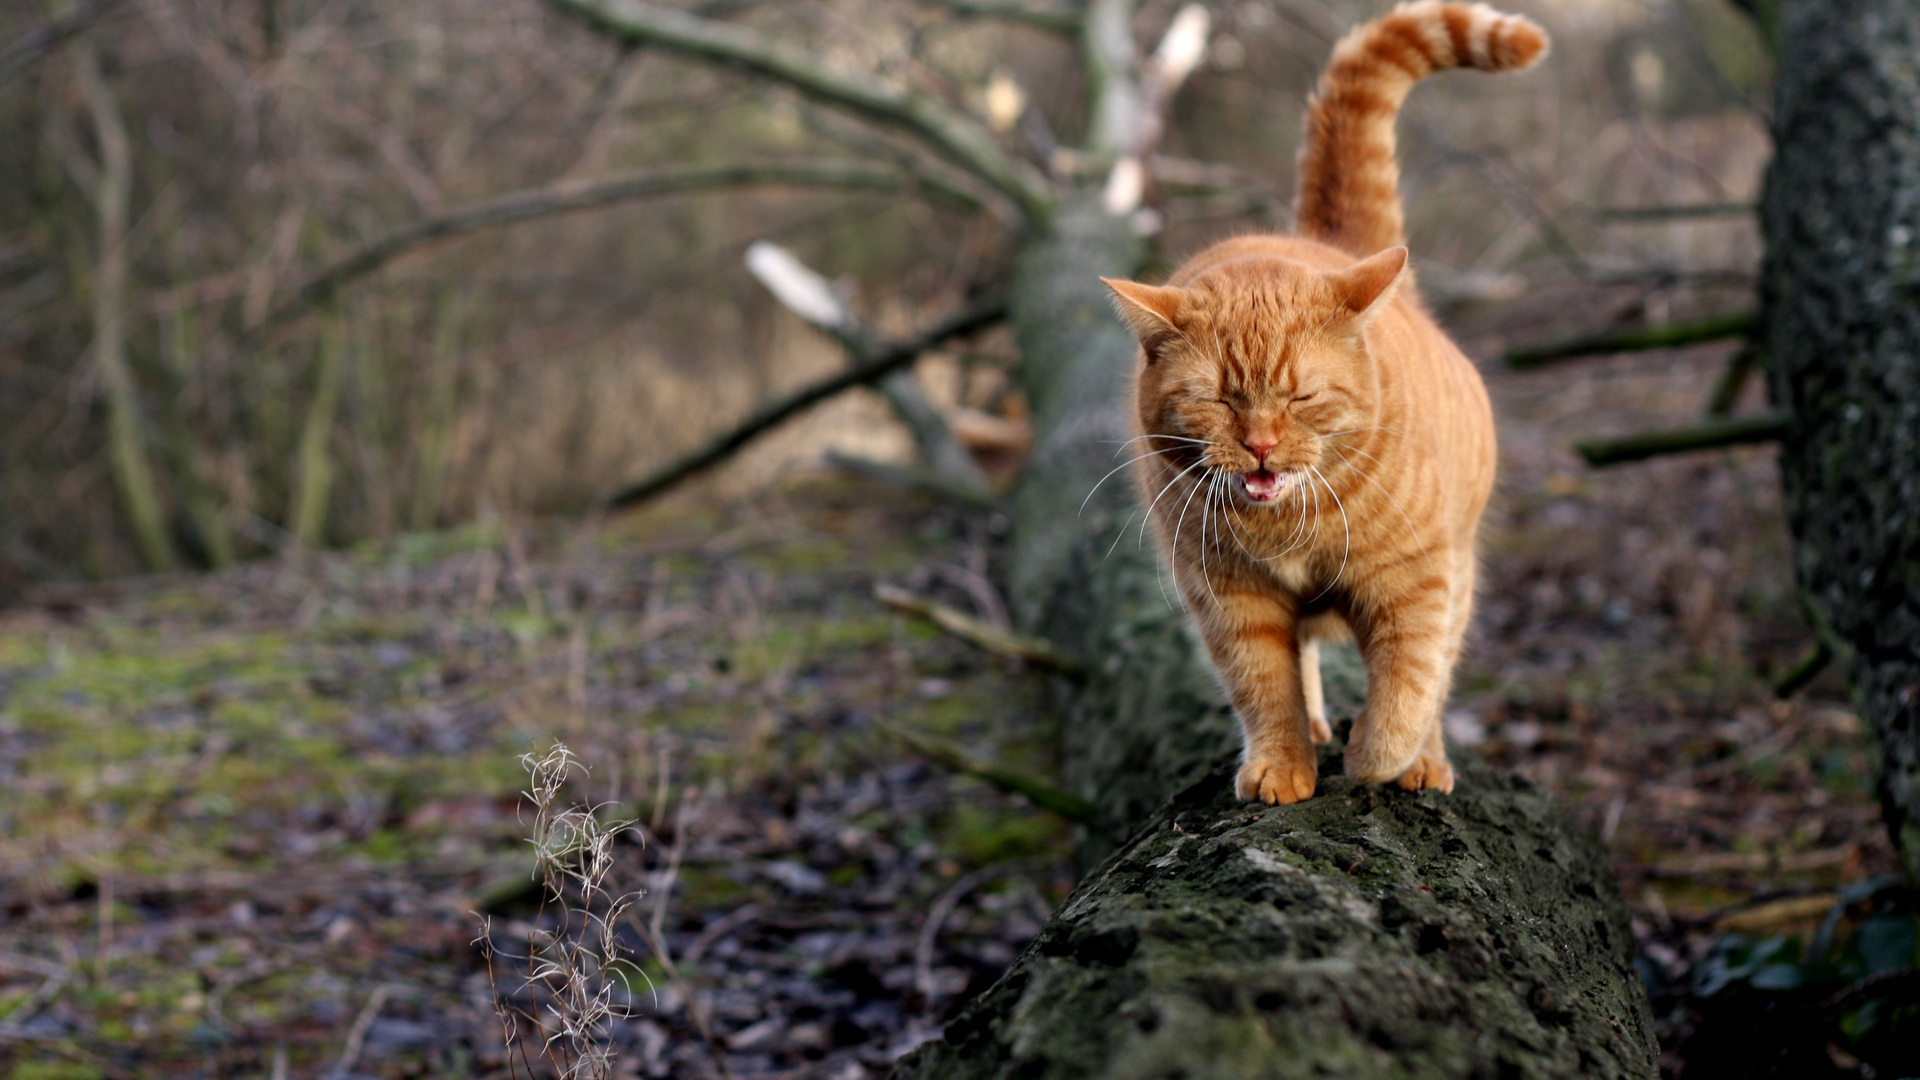 20673 download wallpaper Animals, Cats screensavers and pictures for free